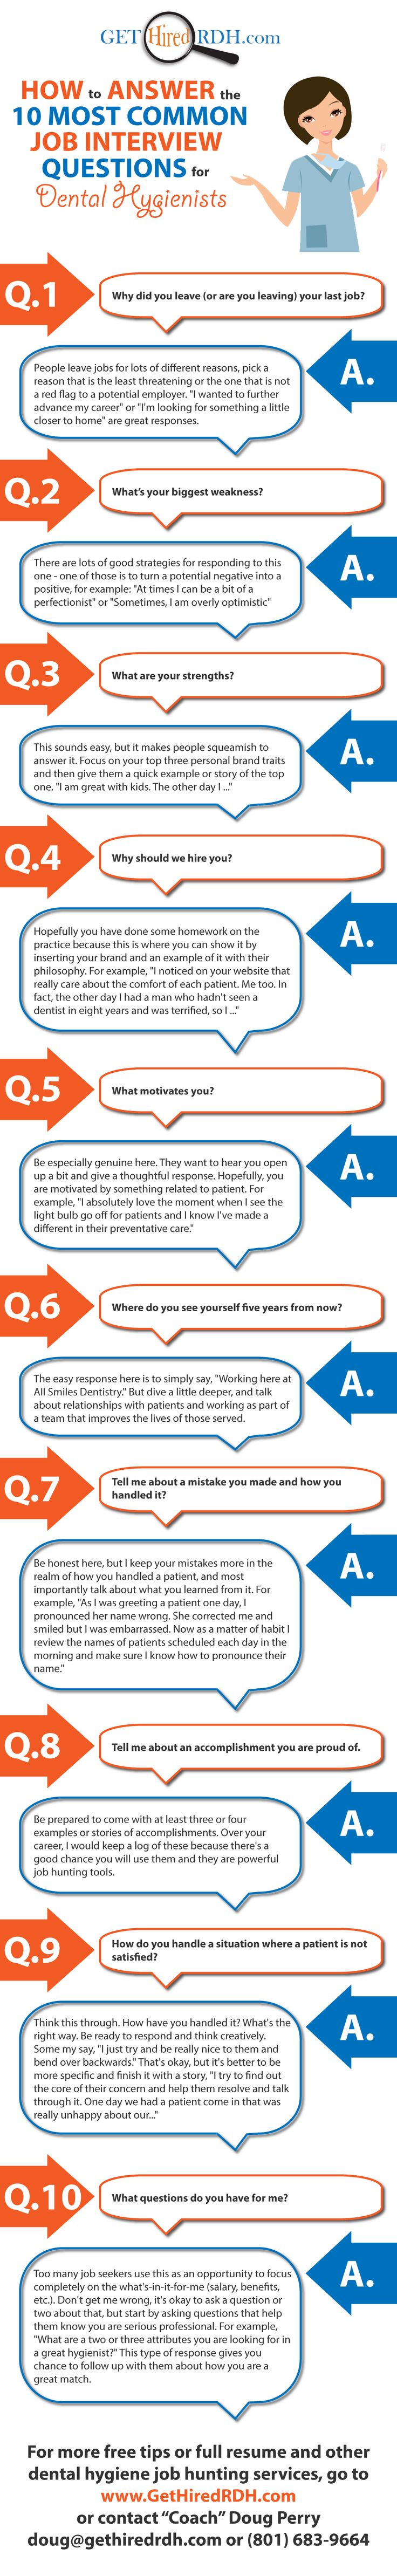 17 best ideas about interview questions job how to answer the 10 most common interview questions for dental hygienists get more at gethiredrdh